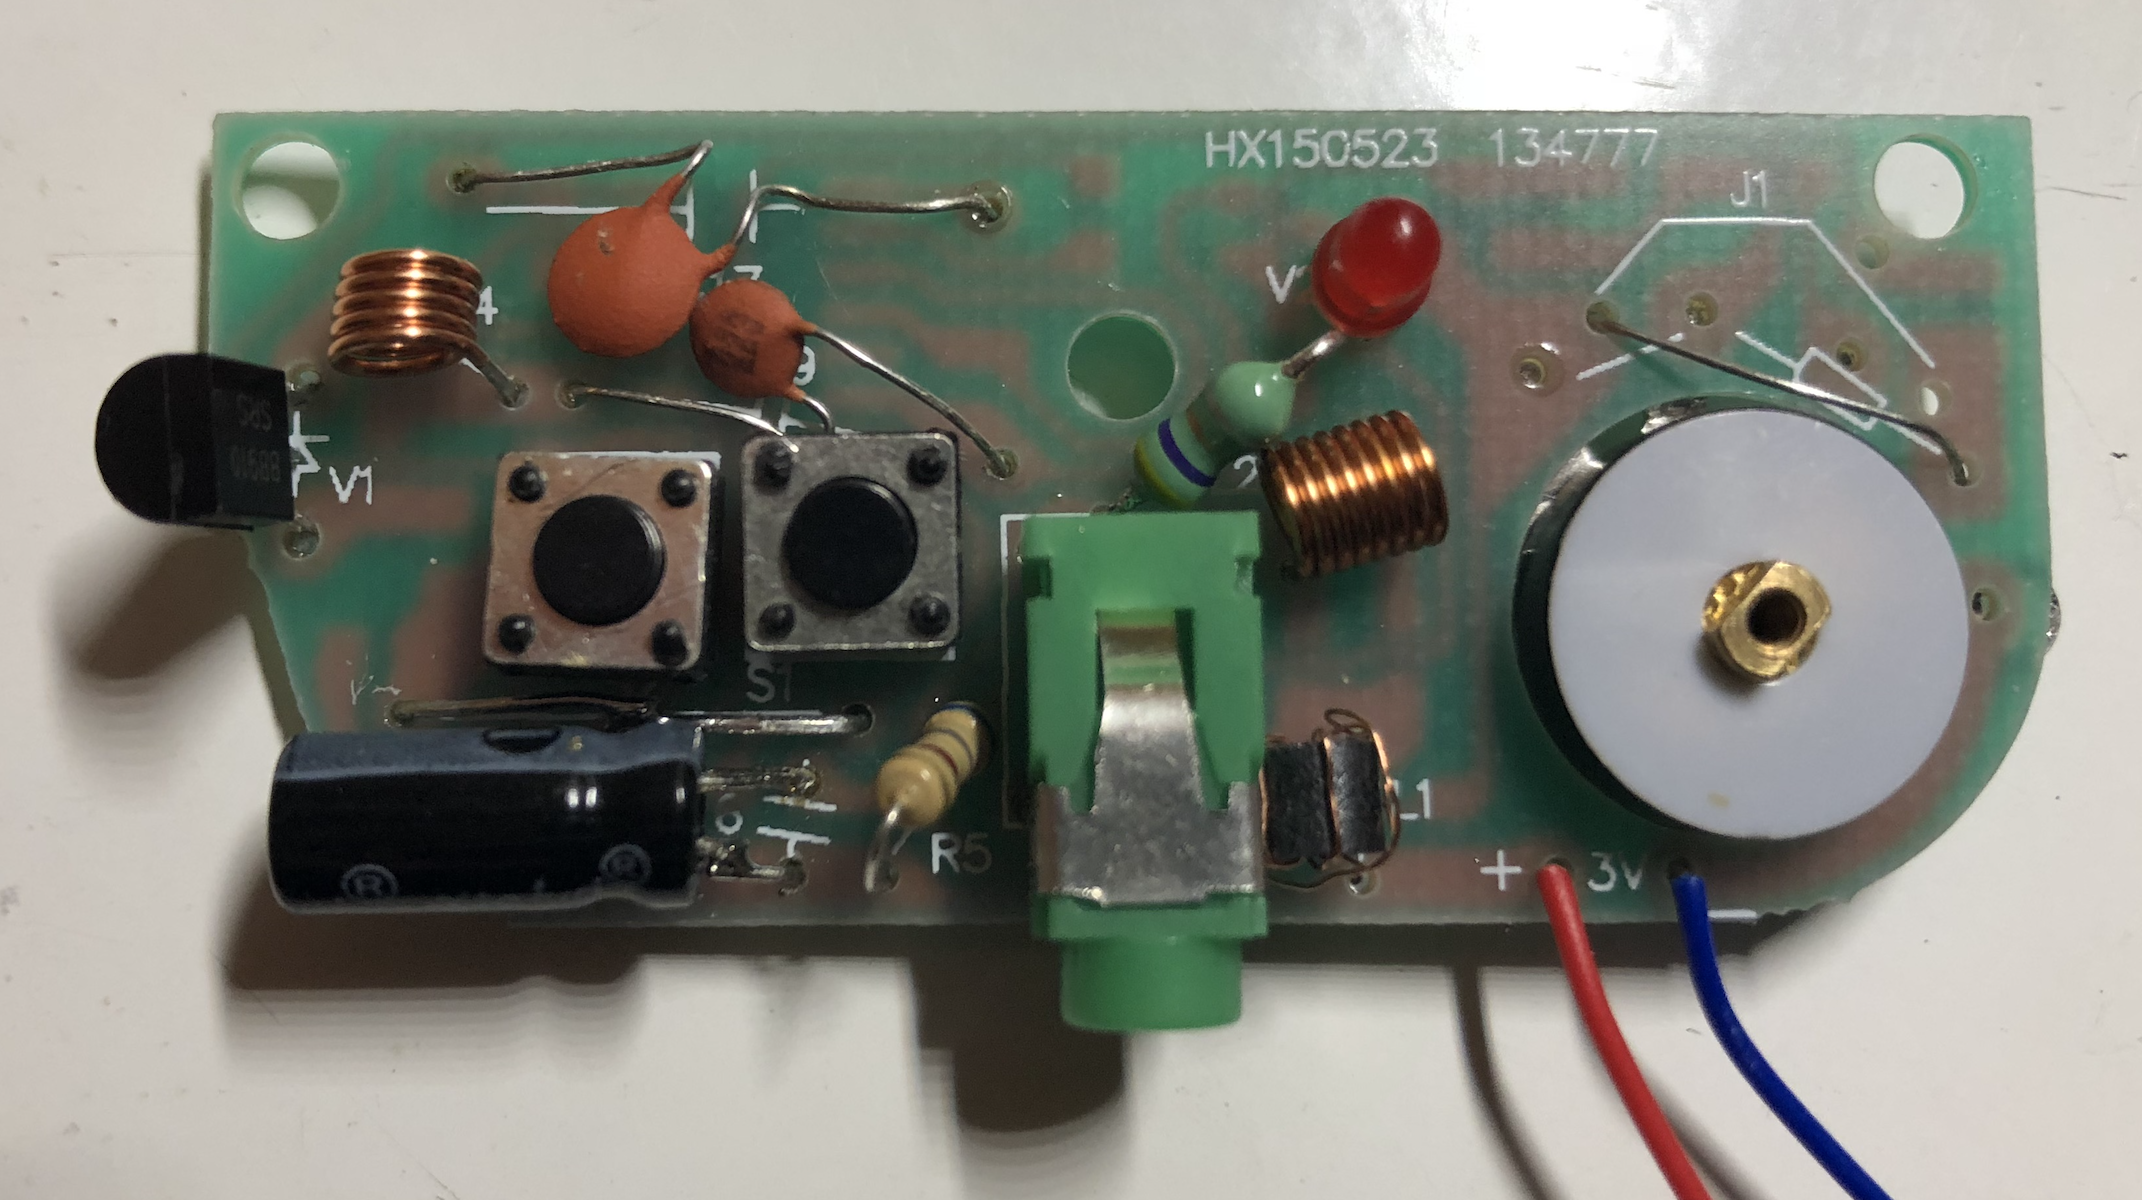 Inductors soldered and more